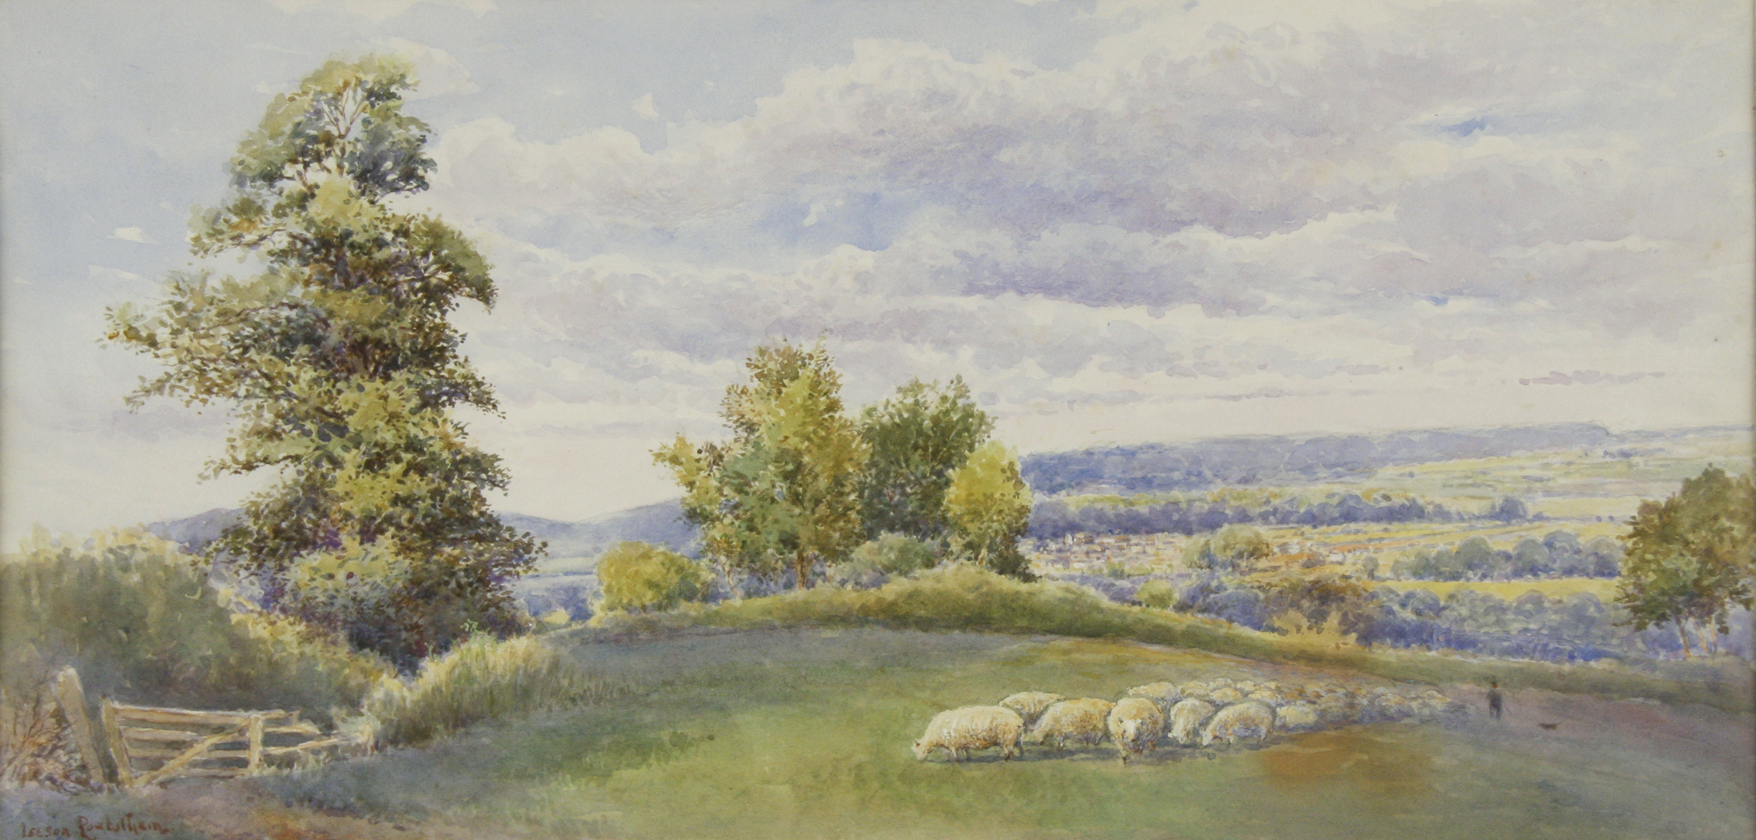 Sheep in an English Pasture